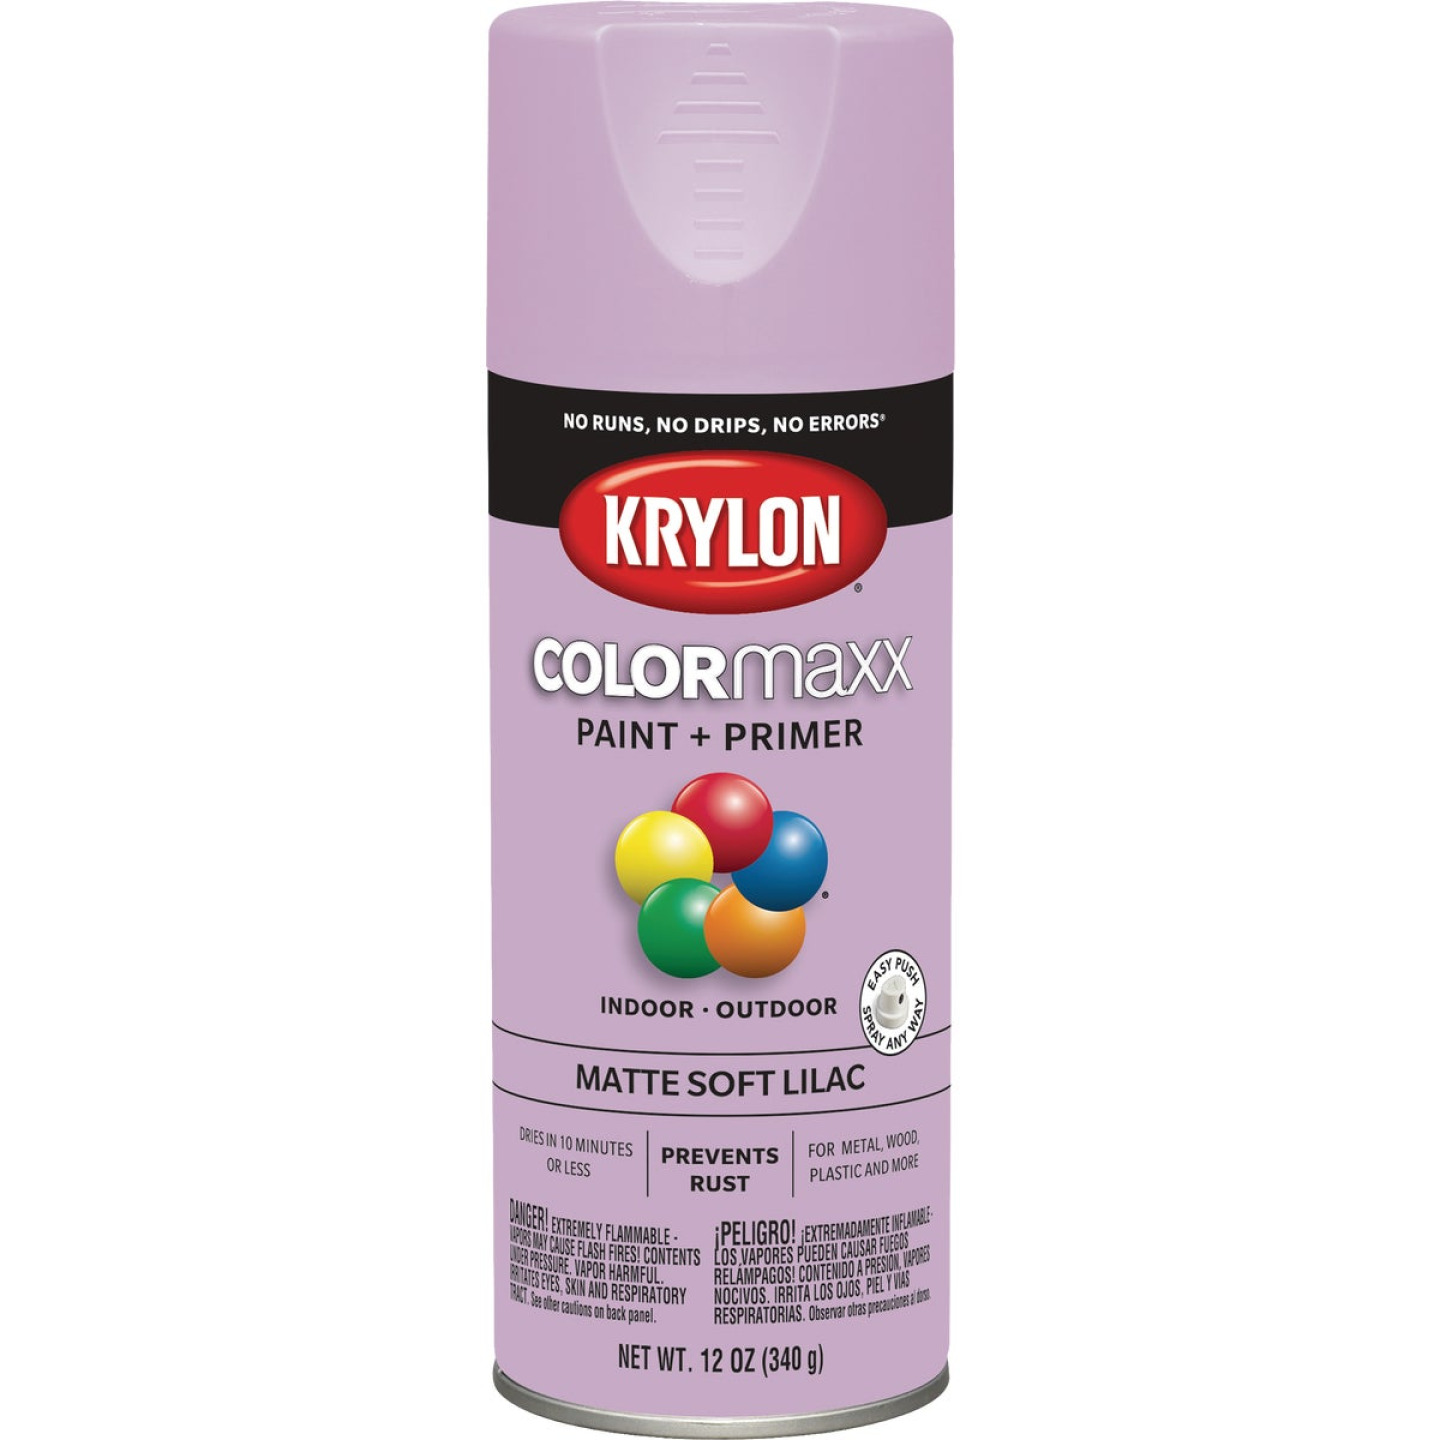 Krylon Colormaxx Matte Spray Paint & Primer, Soft Lilac Image 1